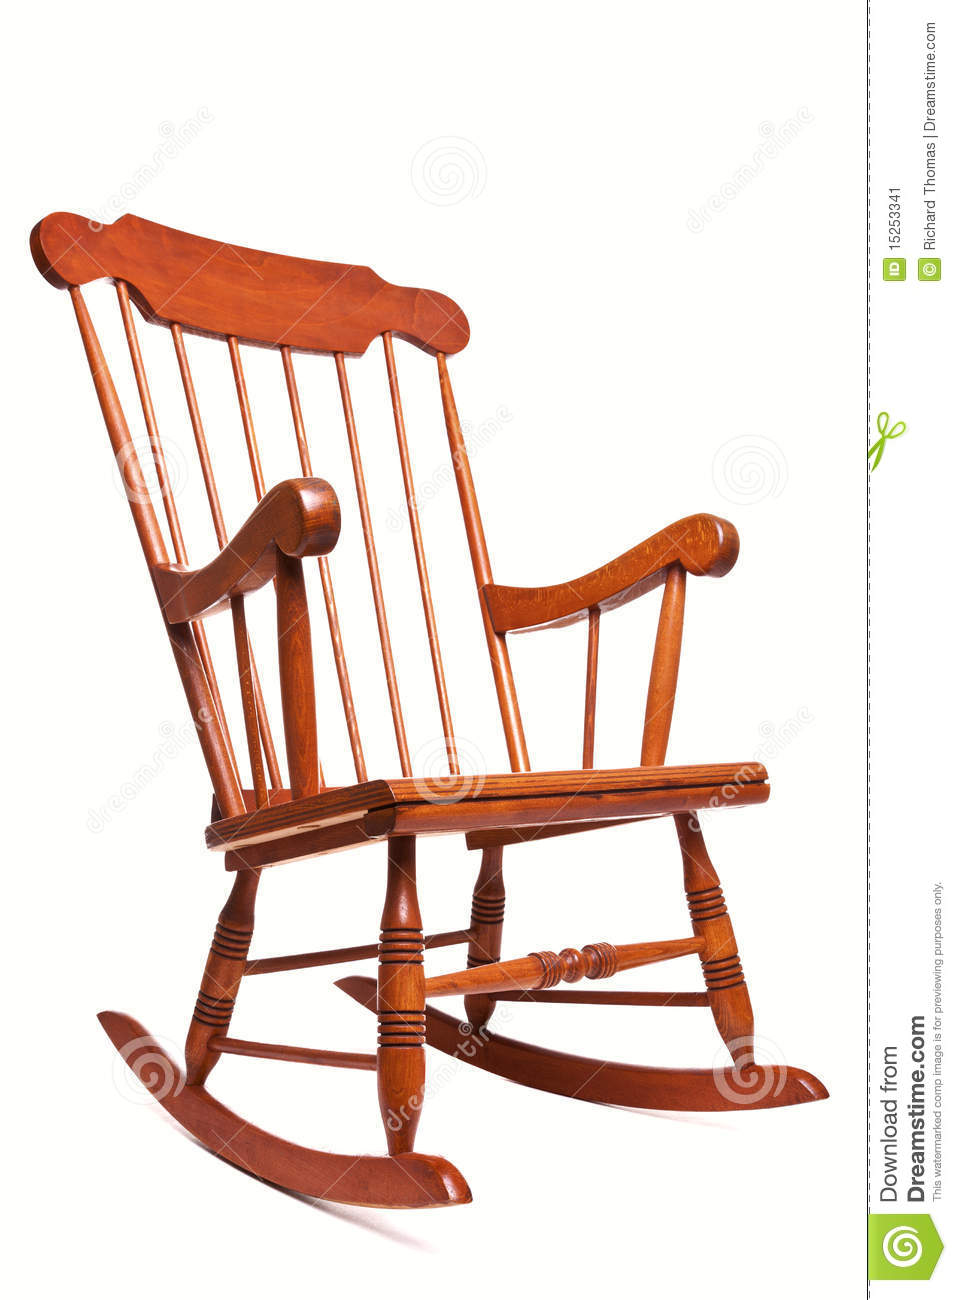 Rocking Chair Clipart Black And White Cl-Rocking Chair Clipart Black And White Clipart Panda Free Clipart-4